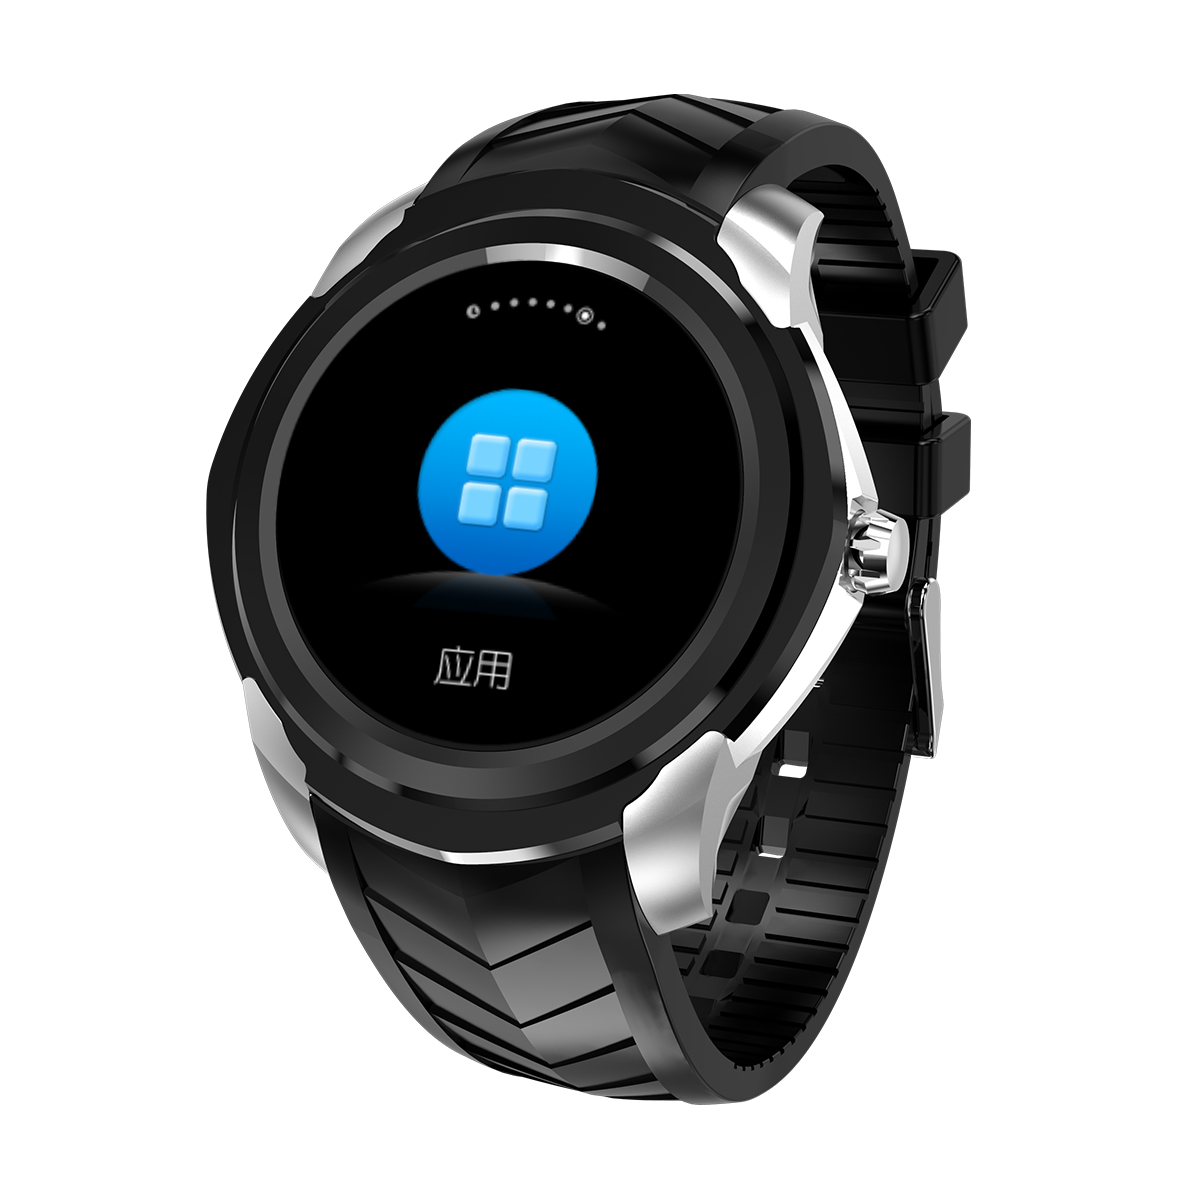 Bakeey C1 GPS Smart Android Watch Men Heart Rate Monitor Pedometer Sports Mode Bluetooth Smartwatch Support 32G dm2018 smart watch android gps sports 4g smartwatch phone 1 54 inch bluetooth heart rate tracker monitor pedometer pk kw88 dm98